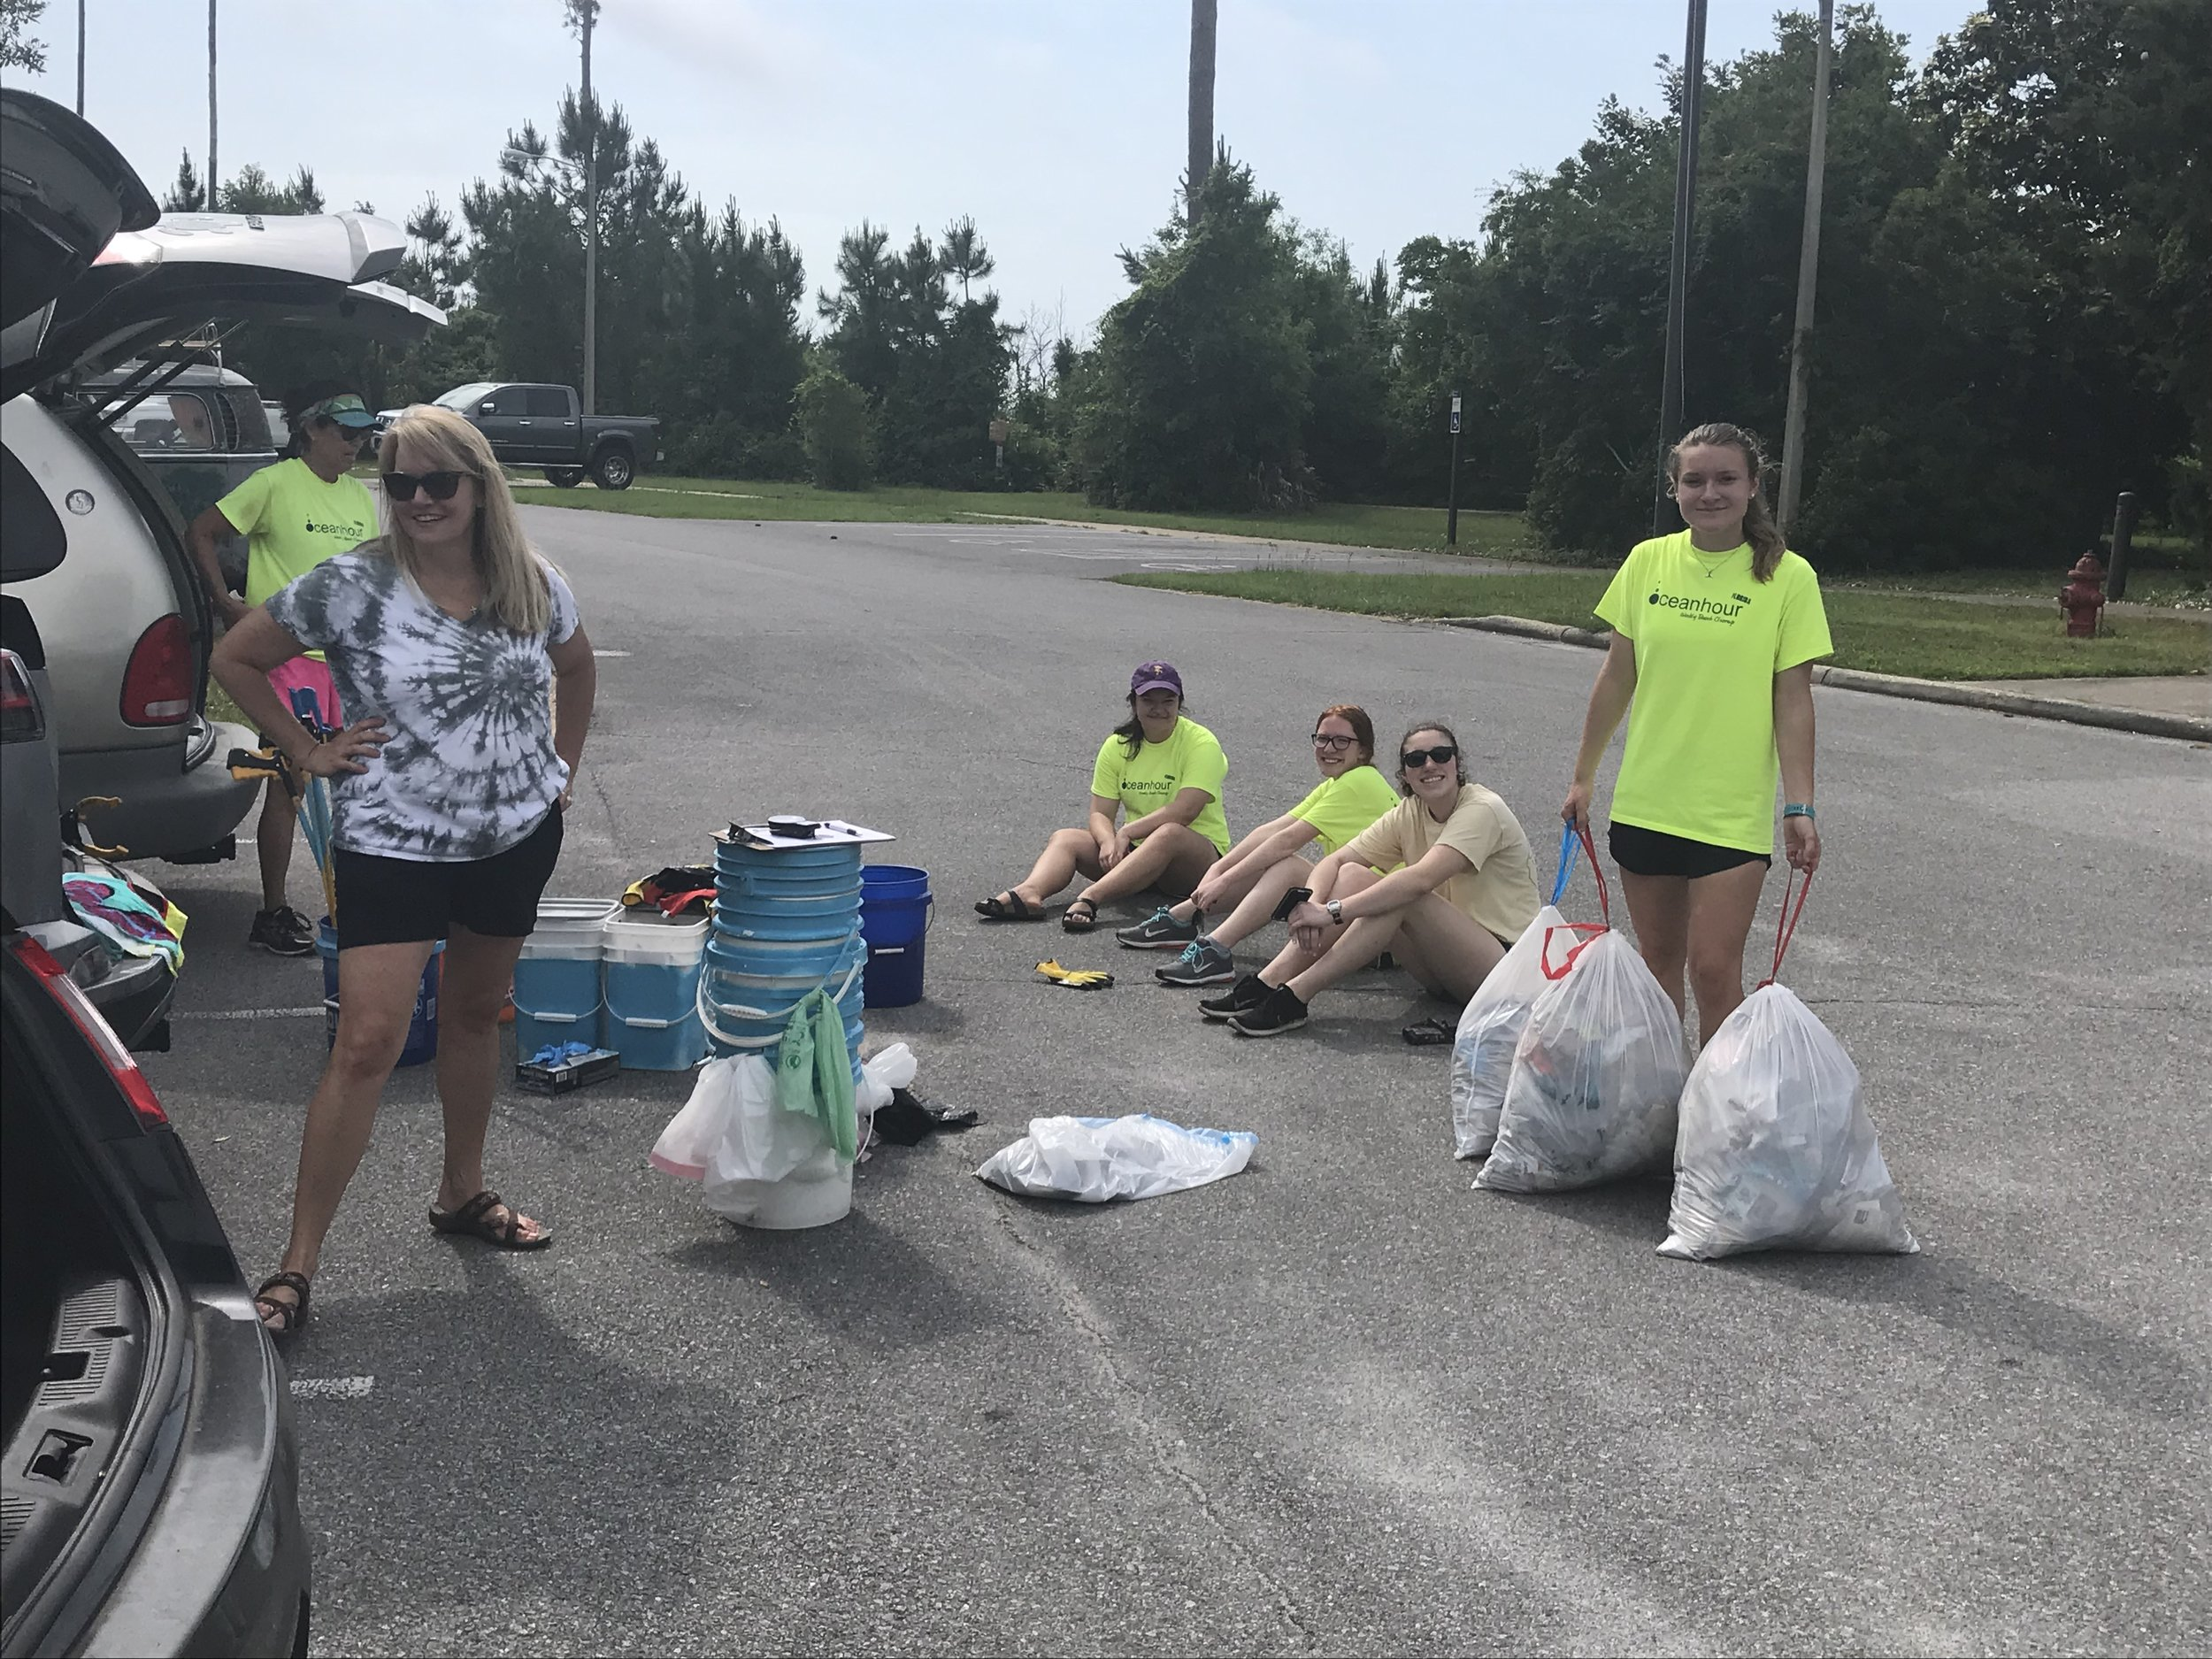 - with 17 volunteers at Naval Live Oak including Gulf Breeze High's Honors Society to pick up 227 lbs. Also another 20 volunteers collected 82 lbs for a total of 309 lbs